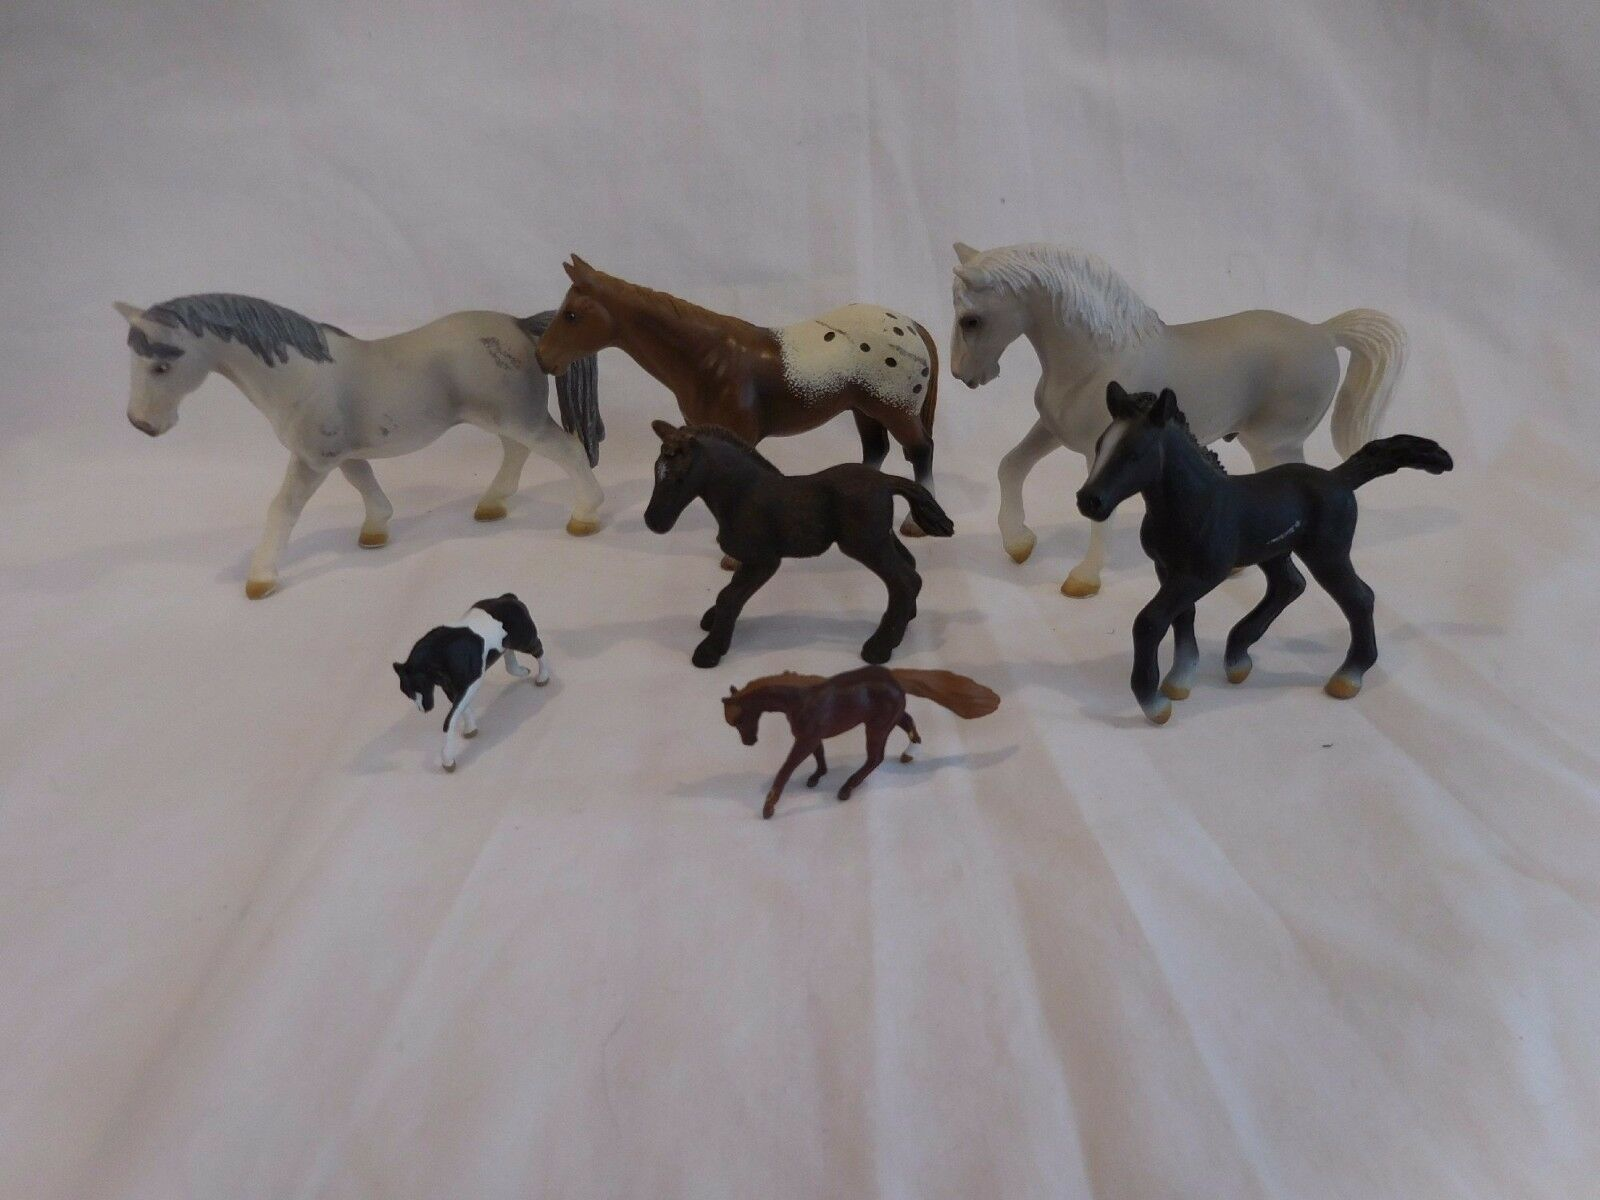 Schleich Horse collection of 7 horses Schleich Germany  Rubber Horse & babies